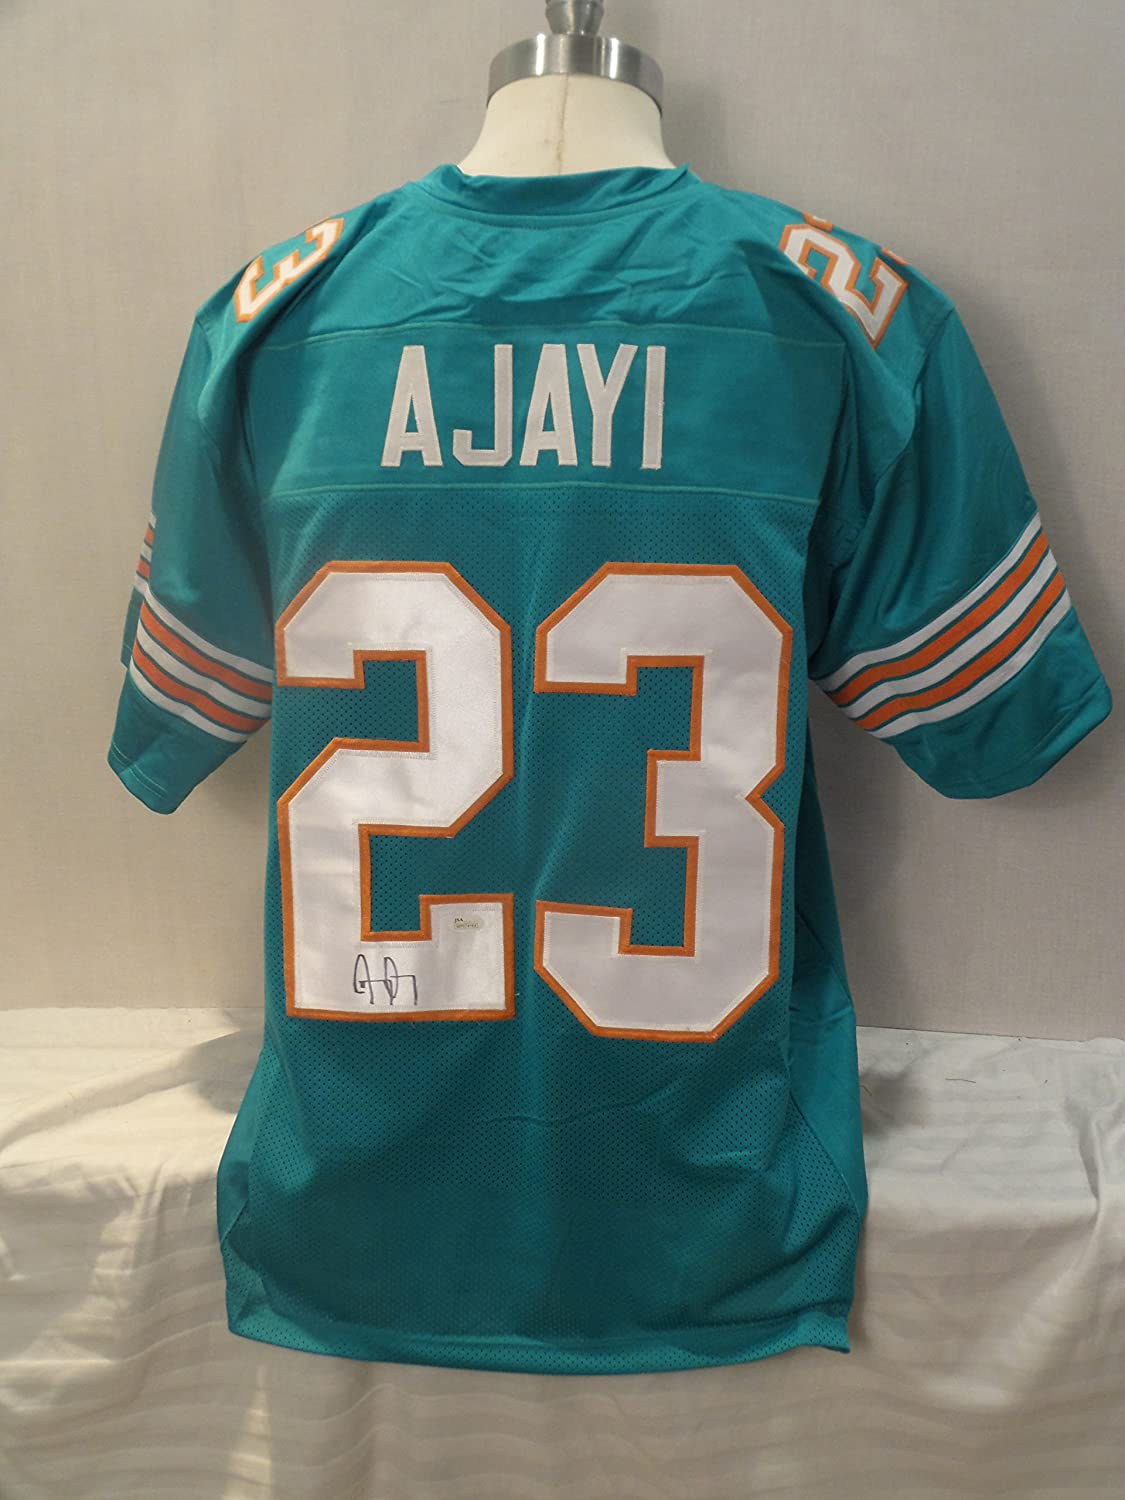 848ff594 Jay Ajayi Signed Miami Dolphins Teal Autographed Jersey JSA Novelty ...